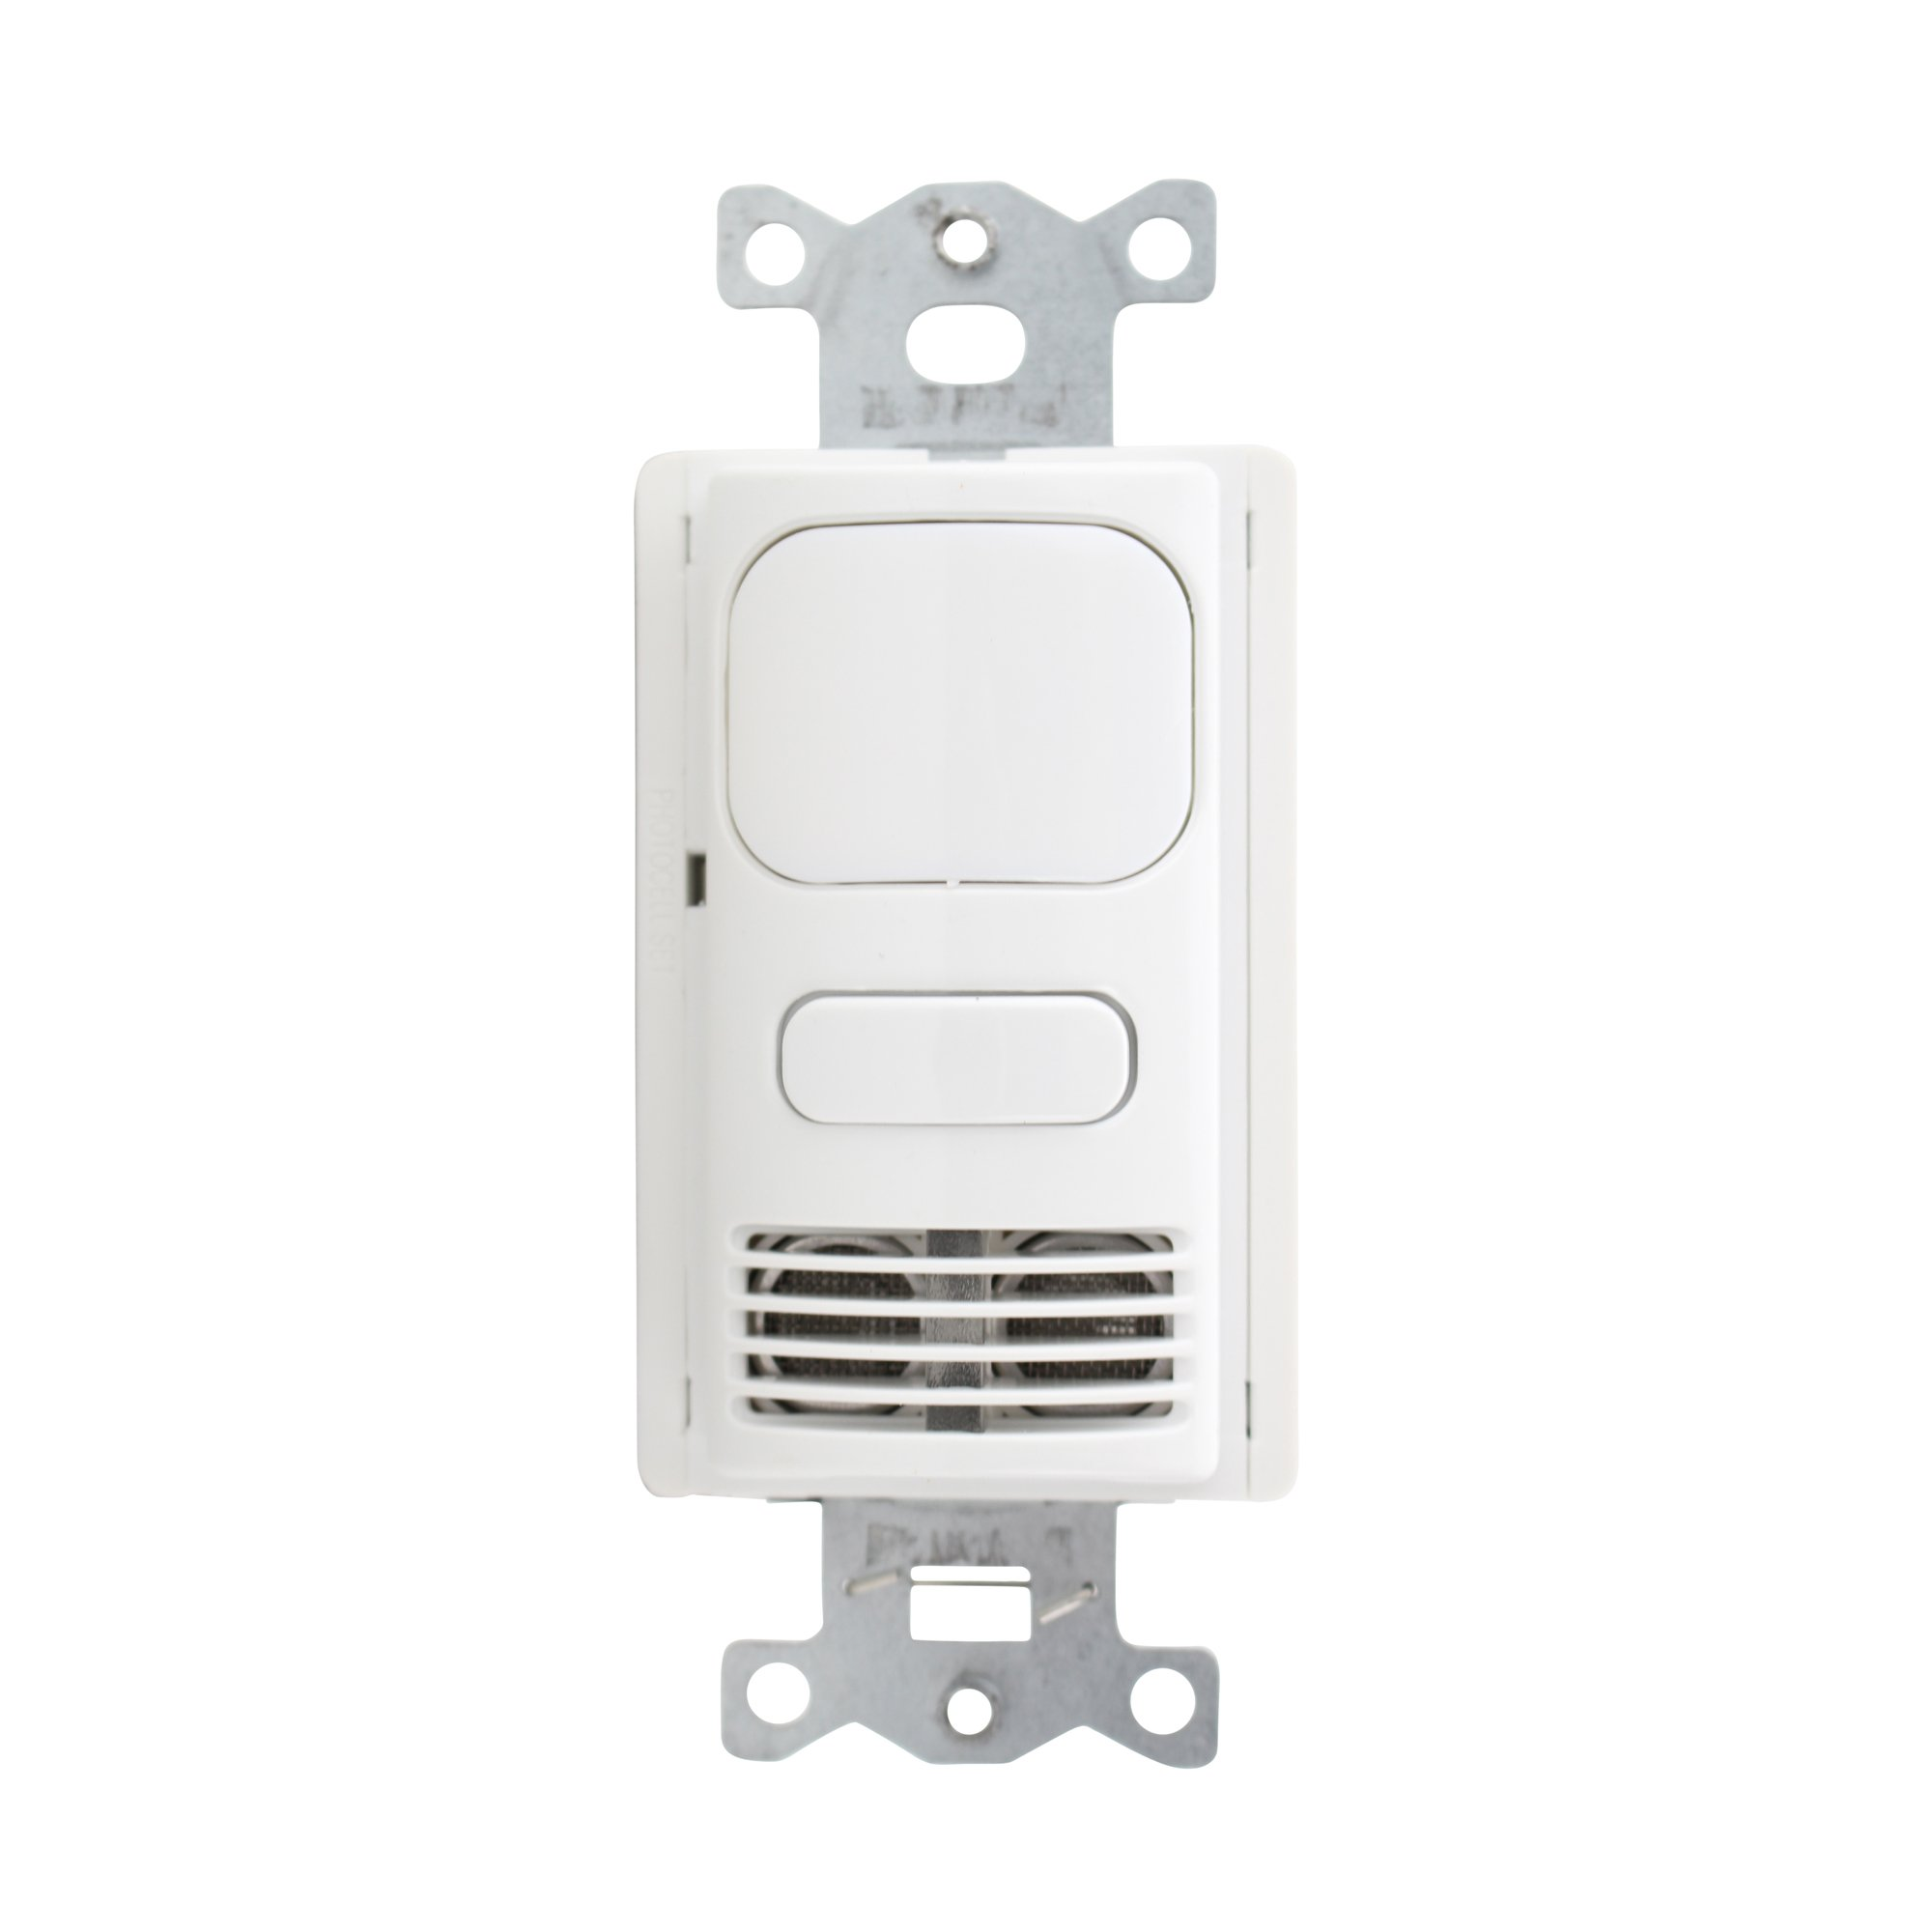 Hubbell Building Automation LHMTS1-G-WH LightHawk2 Dual Technology Wall Switch Sensor, Ground Wiring, 1 Button, 1000' Sensing Distance, White